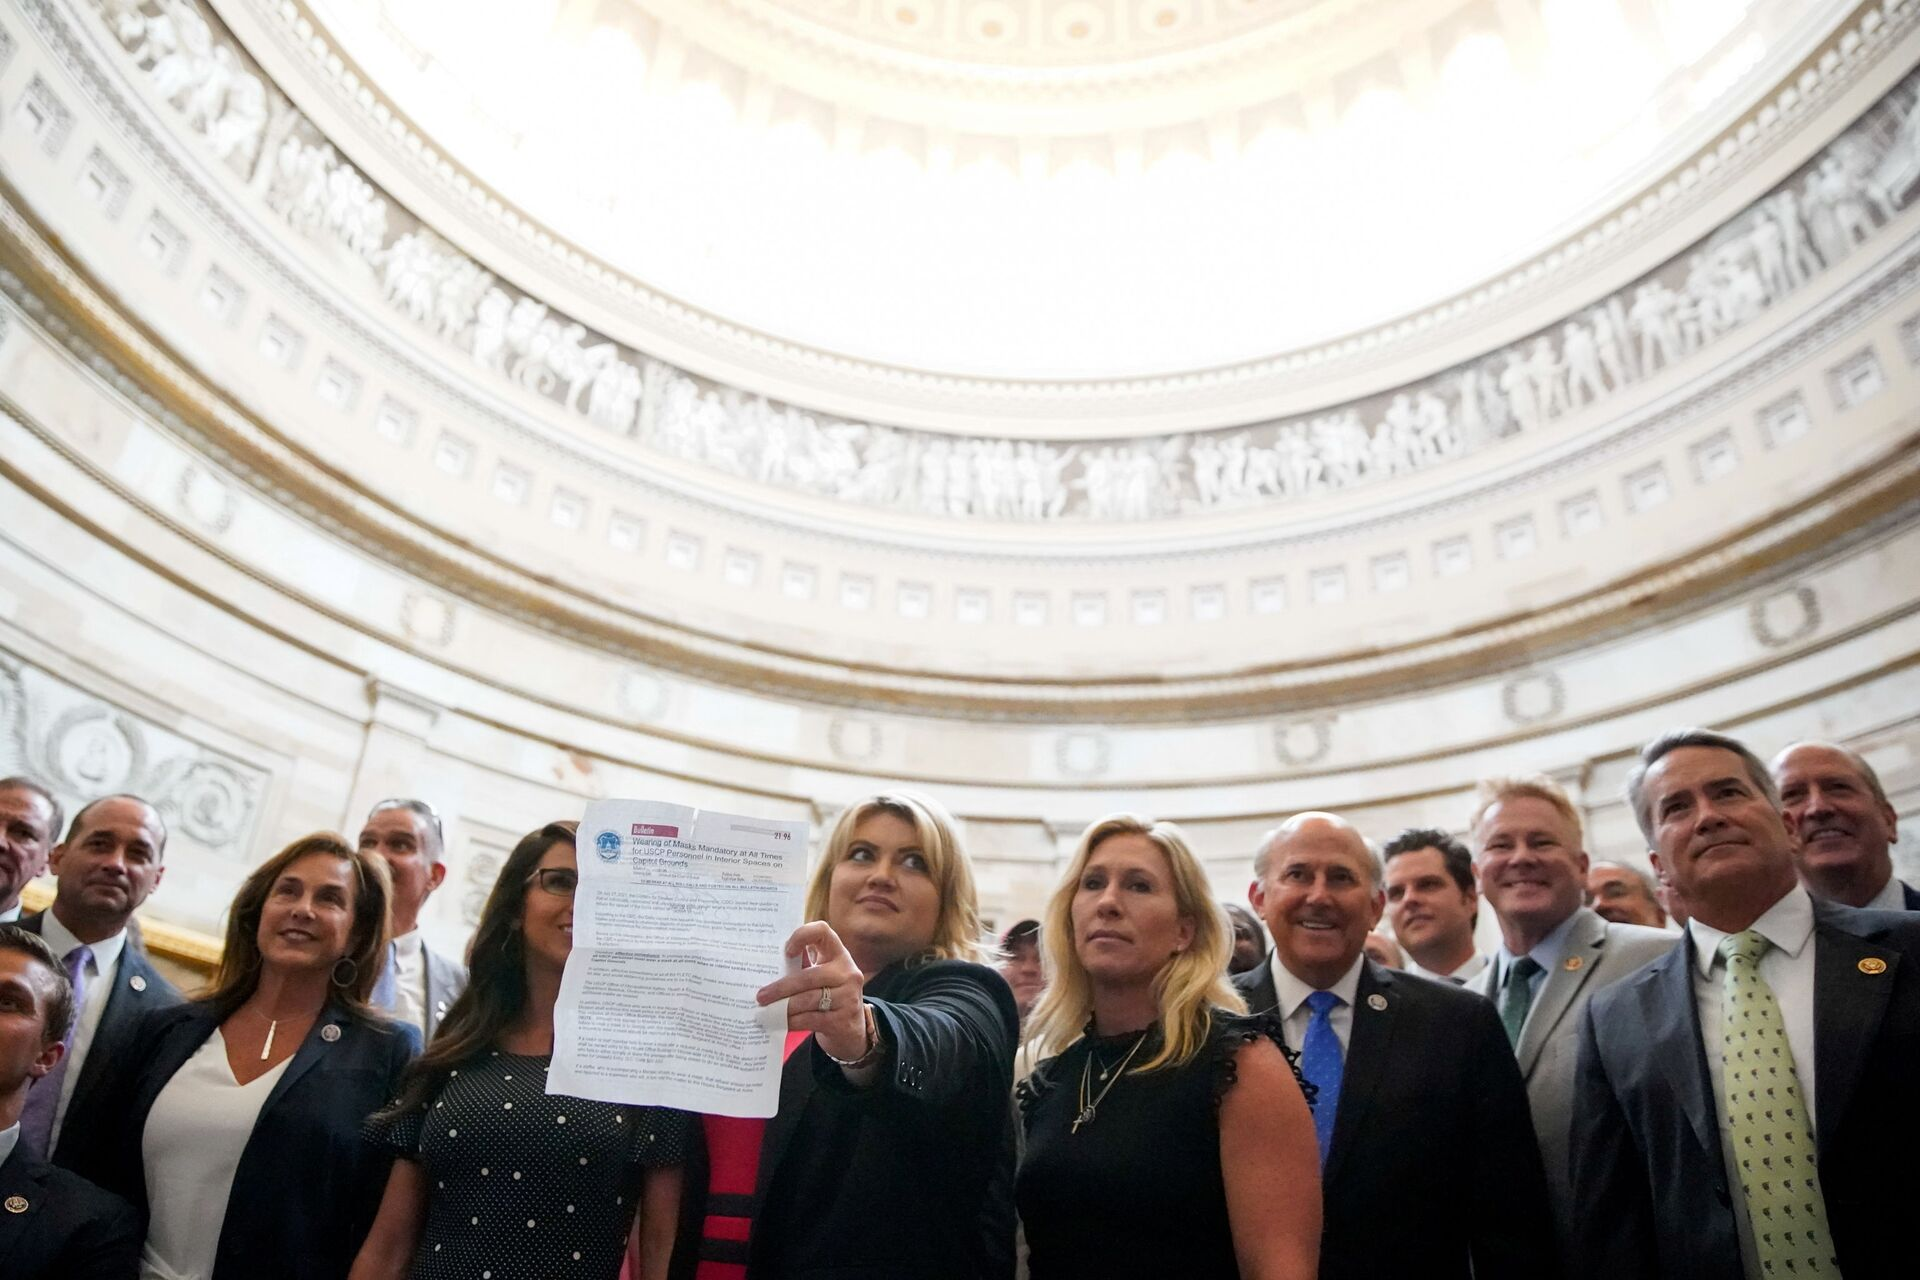 U.S. Rep. Kat Cammack (R-FL) holds up a Capitol Police bulletin requiring masks be worn in interior spaces on the Capitol grounds due to coronavirus disease (COVID-19) during a photo with House Republicans who oppose mask mandates before the group marched to the Senate chamber at the U.S. Capitol in Washington, U.S., July 29, 2021 - Sputnik International, 1920, 07.09.2021